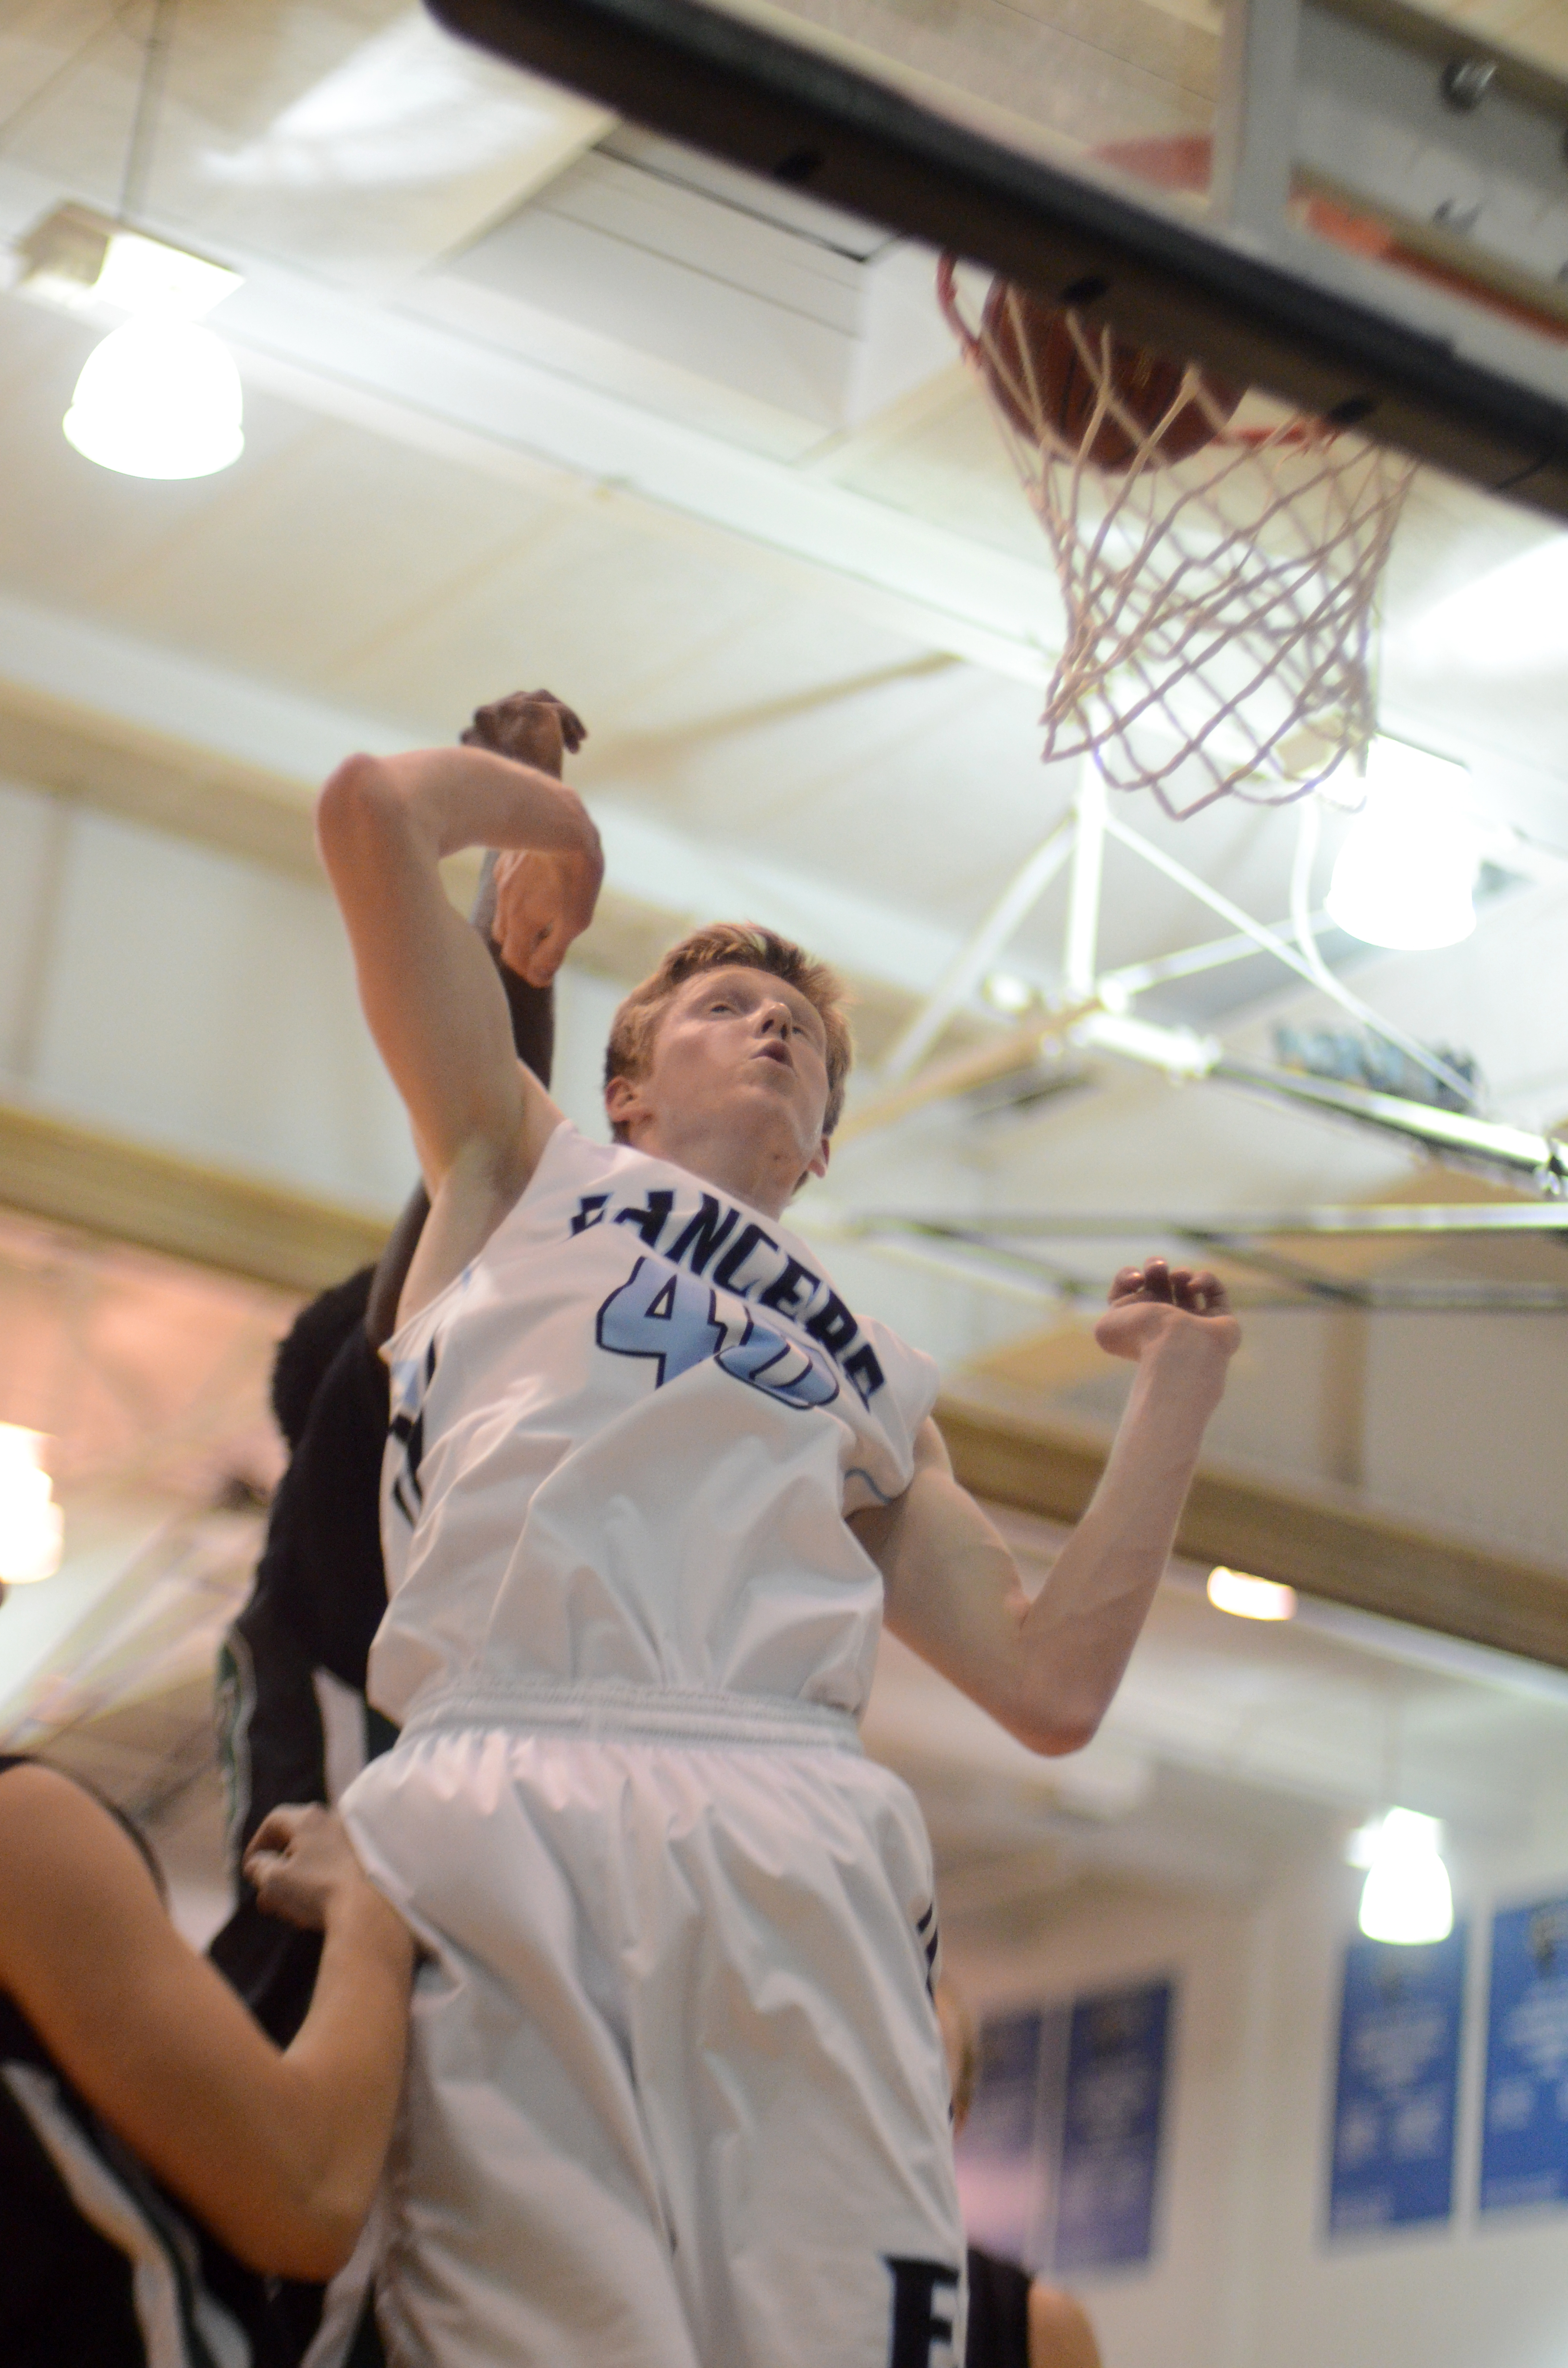 Gallery: Boys Basketball vs. Lawrence Free State